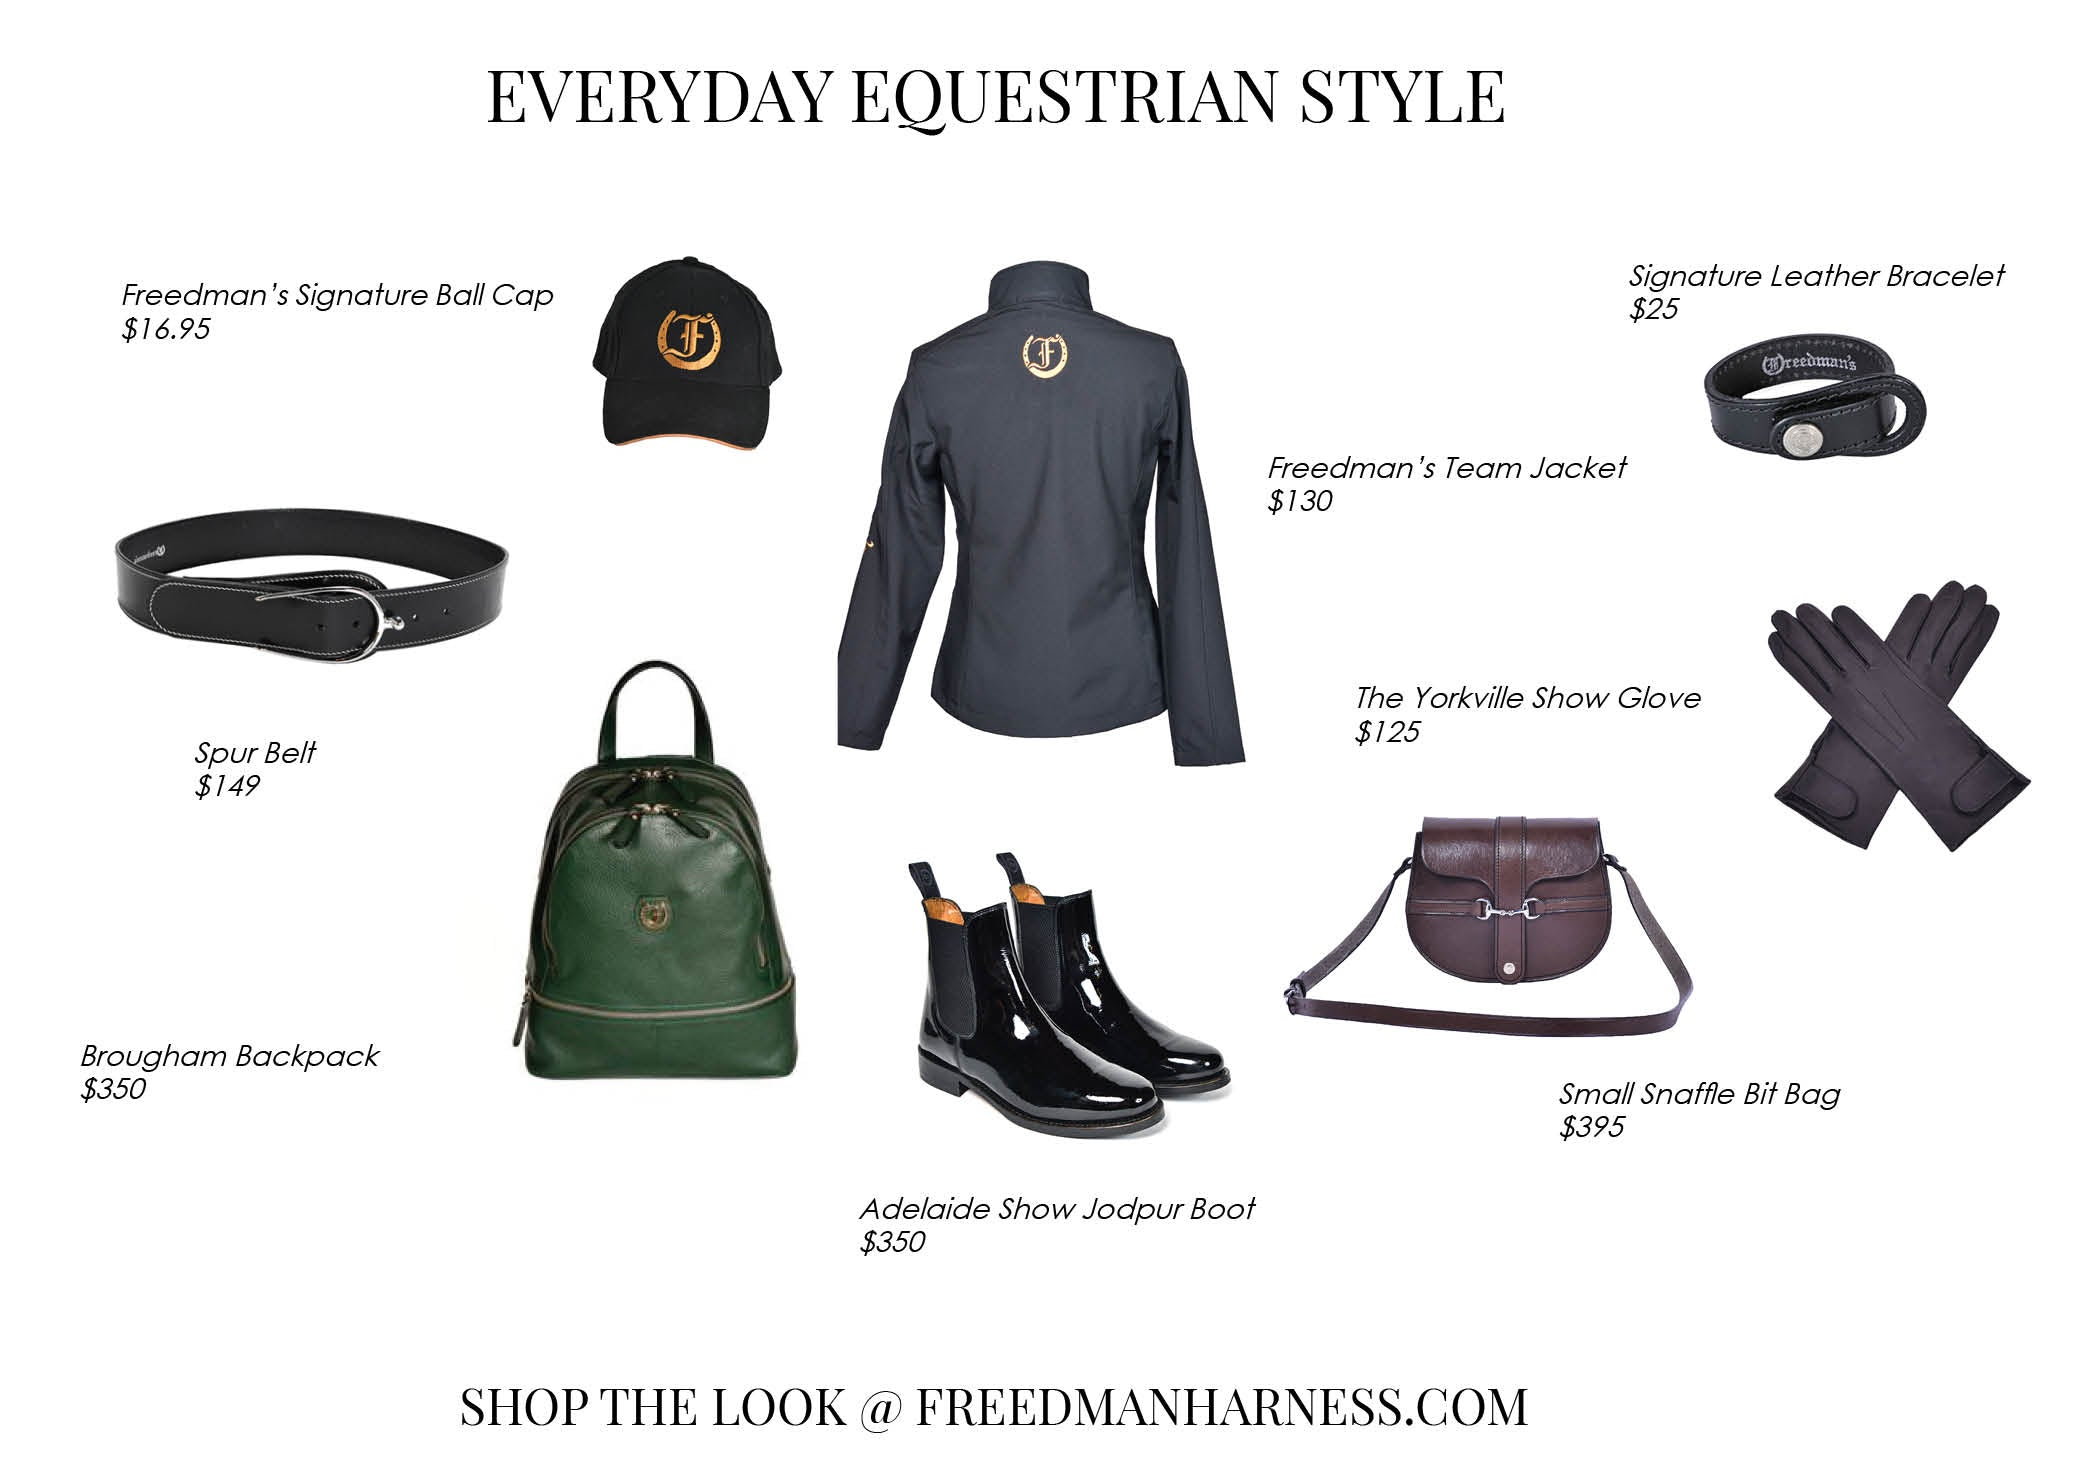 Everyday Equestrian Style Freedman S